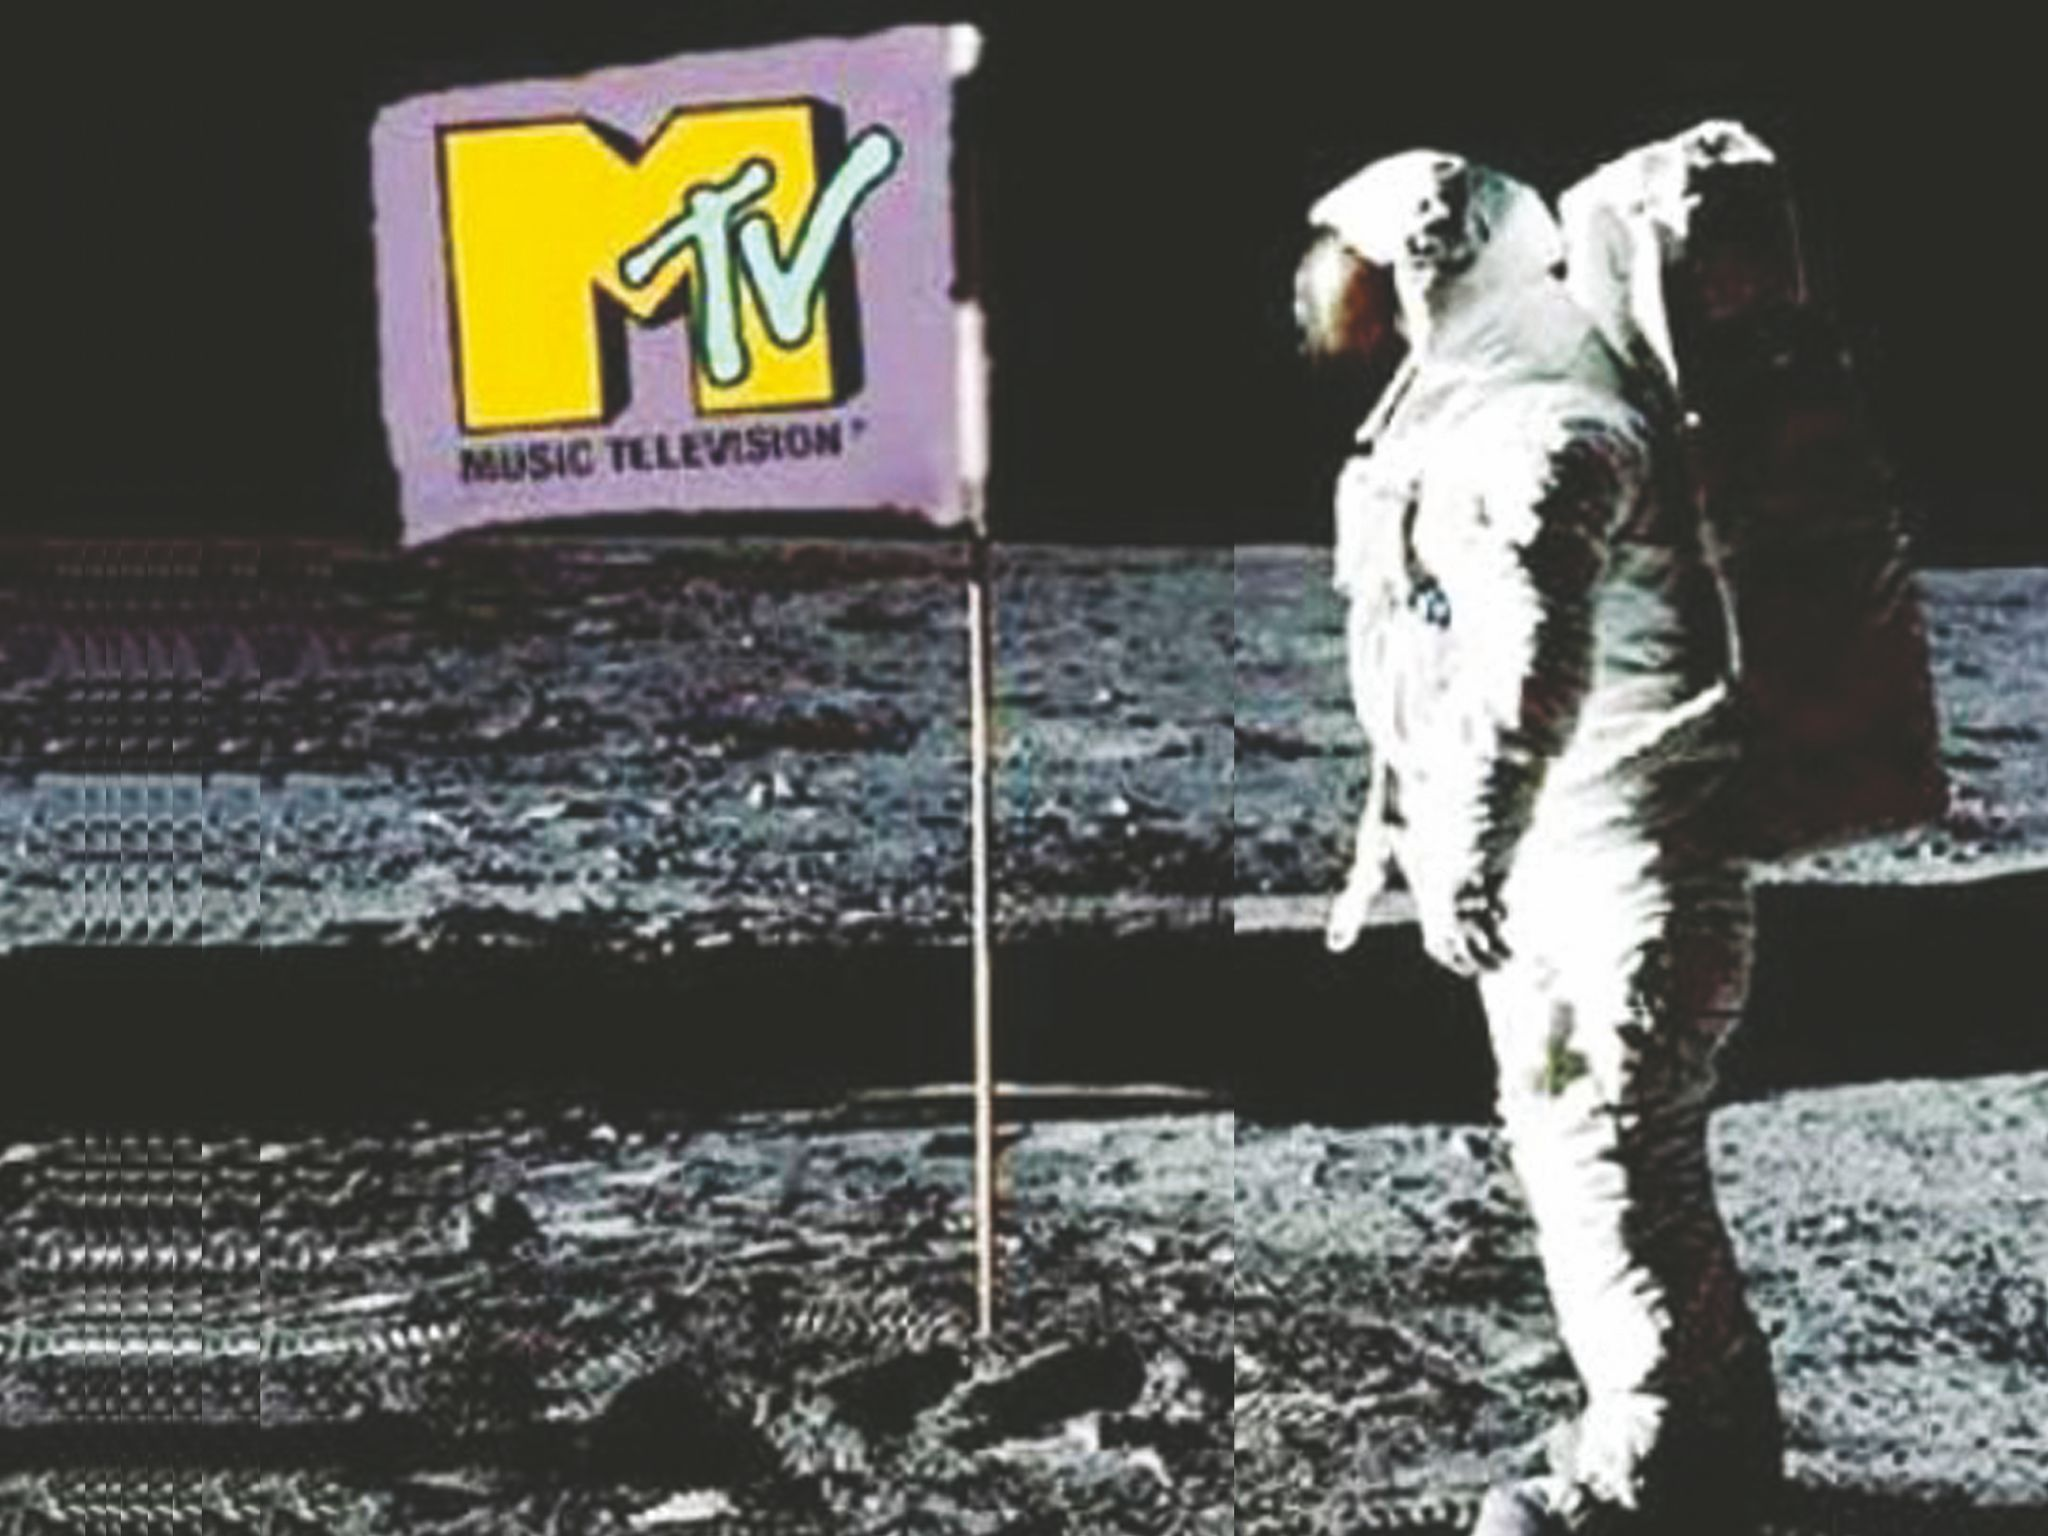 Things I Miss: When MTV was cool